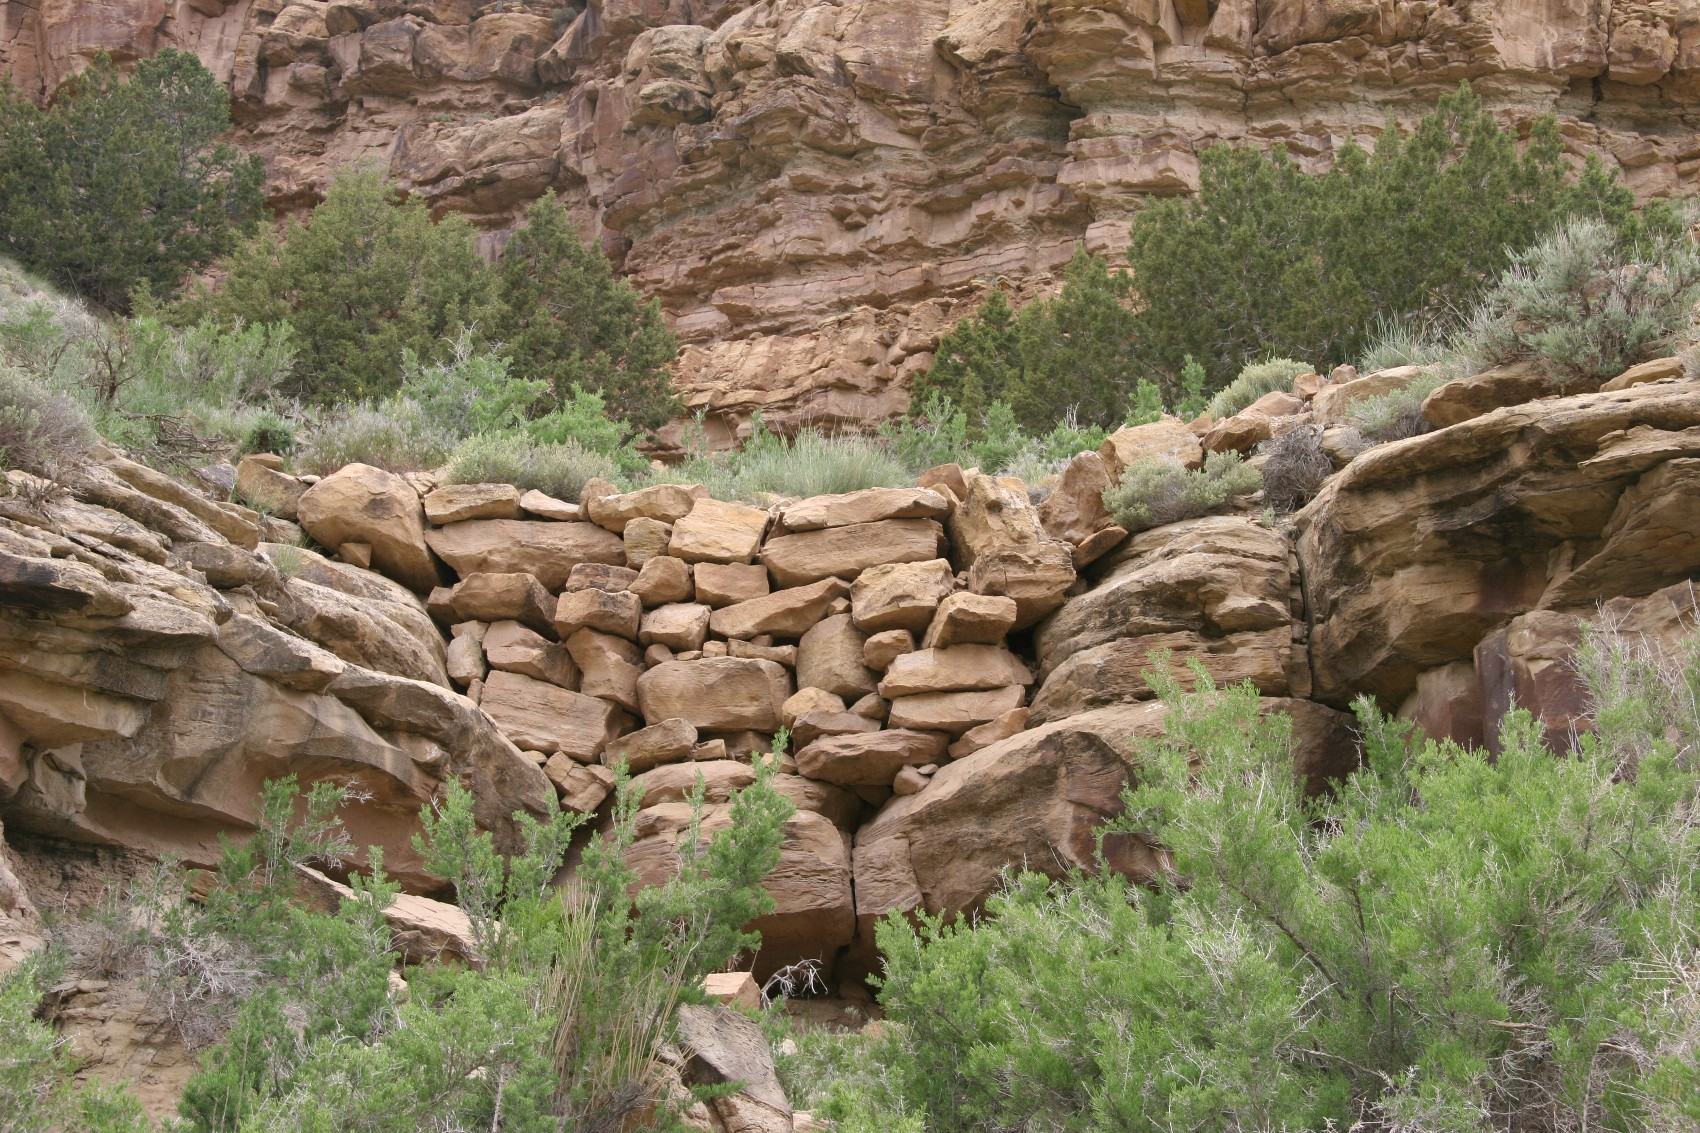 Neatly stacked rock wall after a thousand years. Somehow I don't think our leftovers are going to last the same way